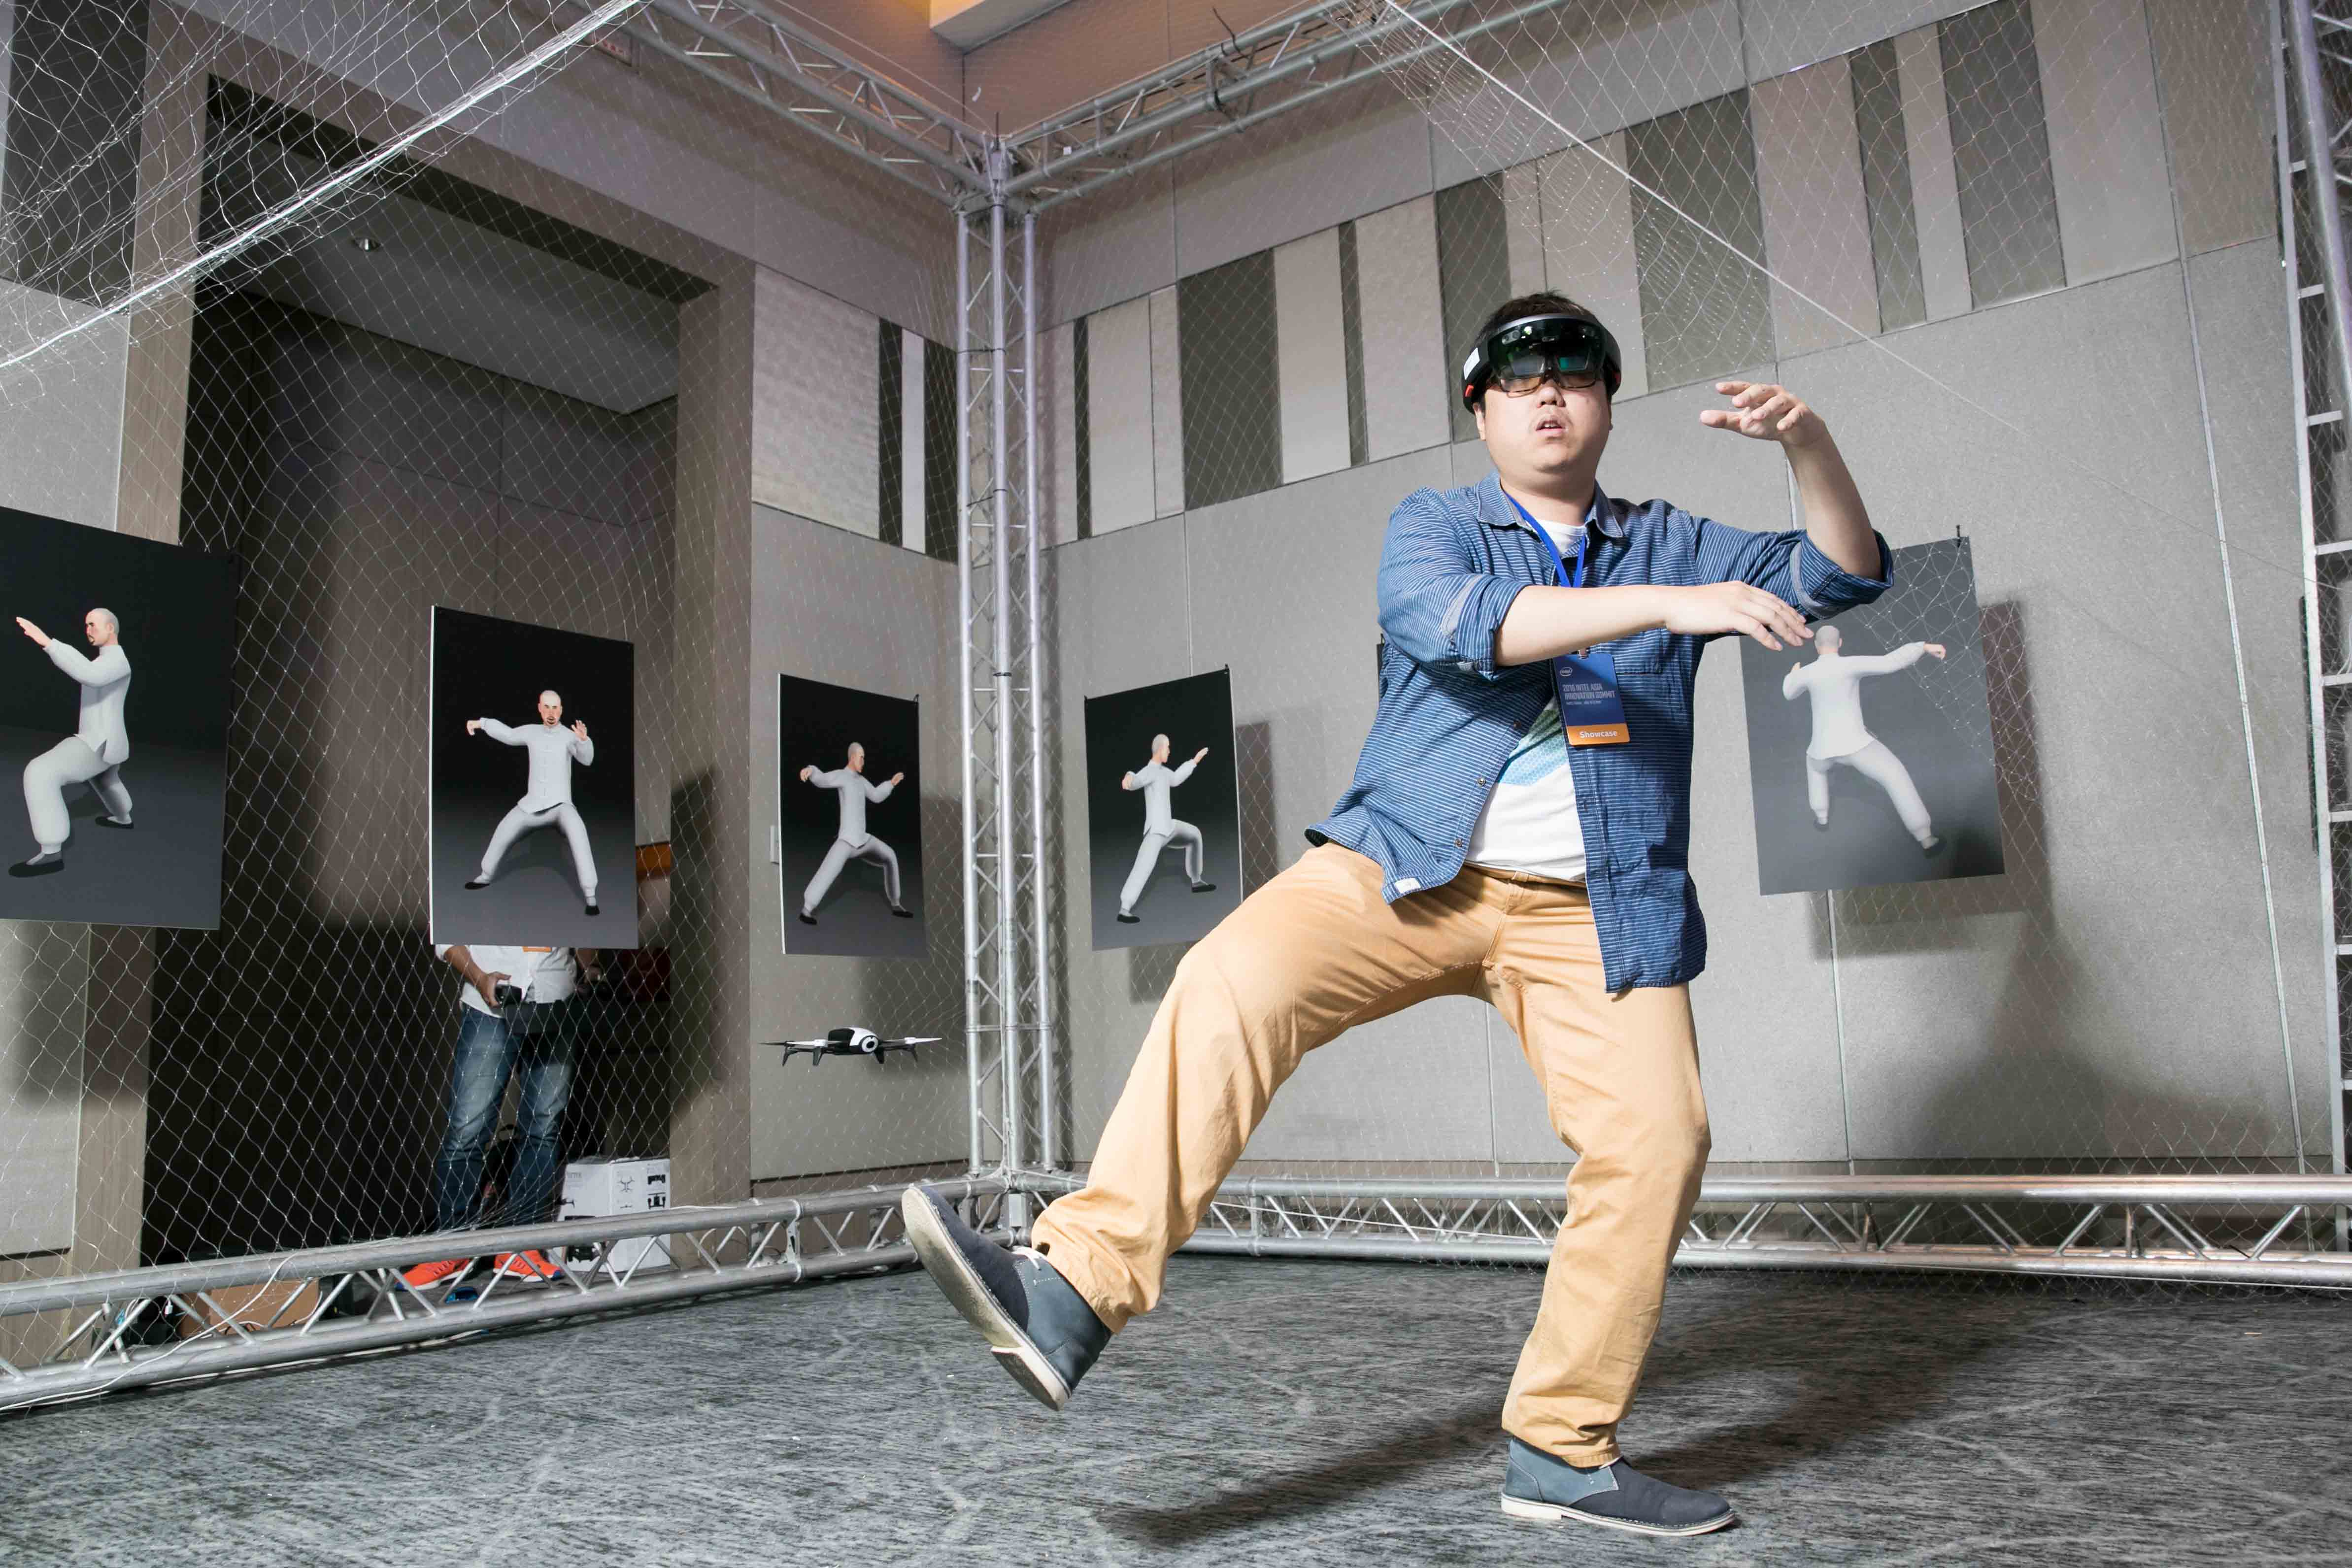 Intel News Photo_8_Augmented-Learning of Tai-Chi